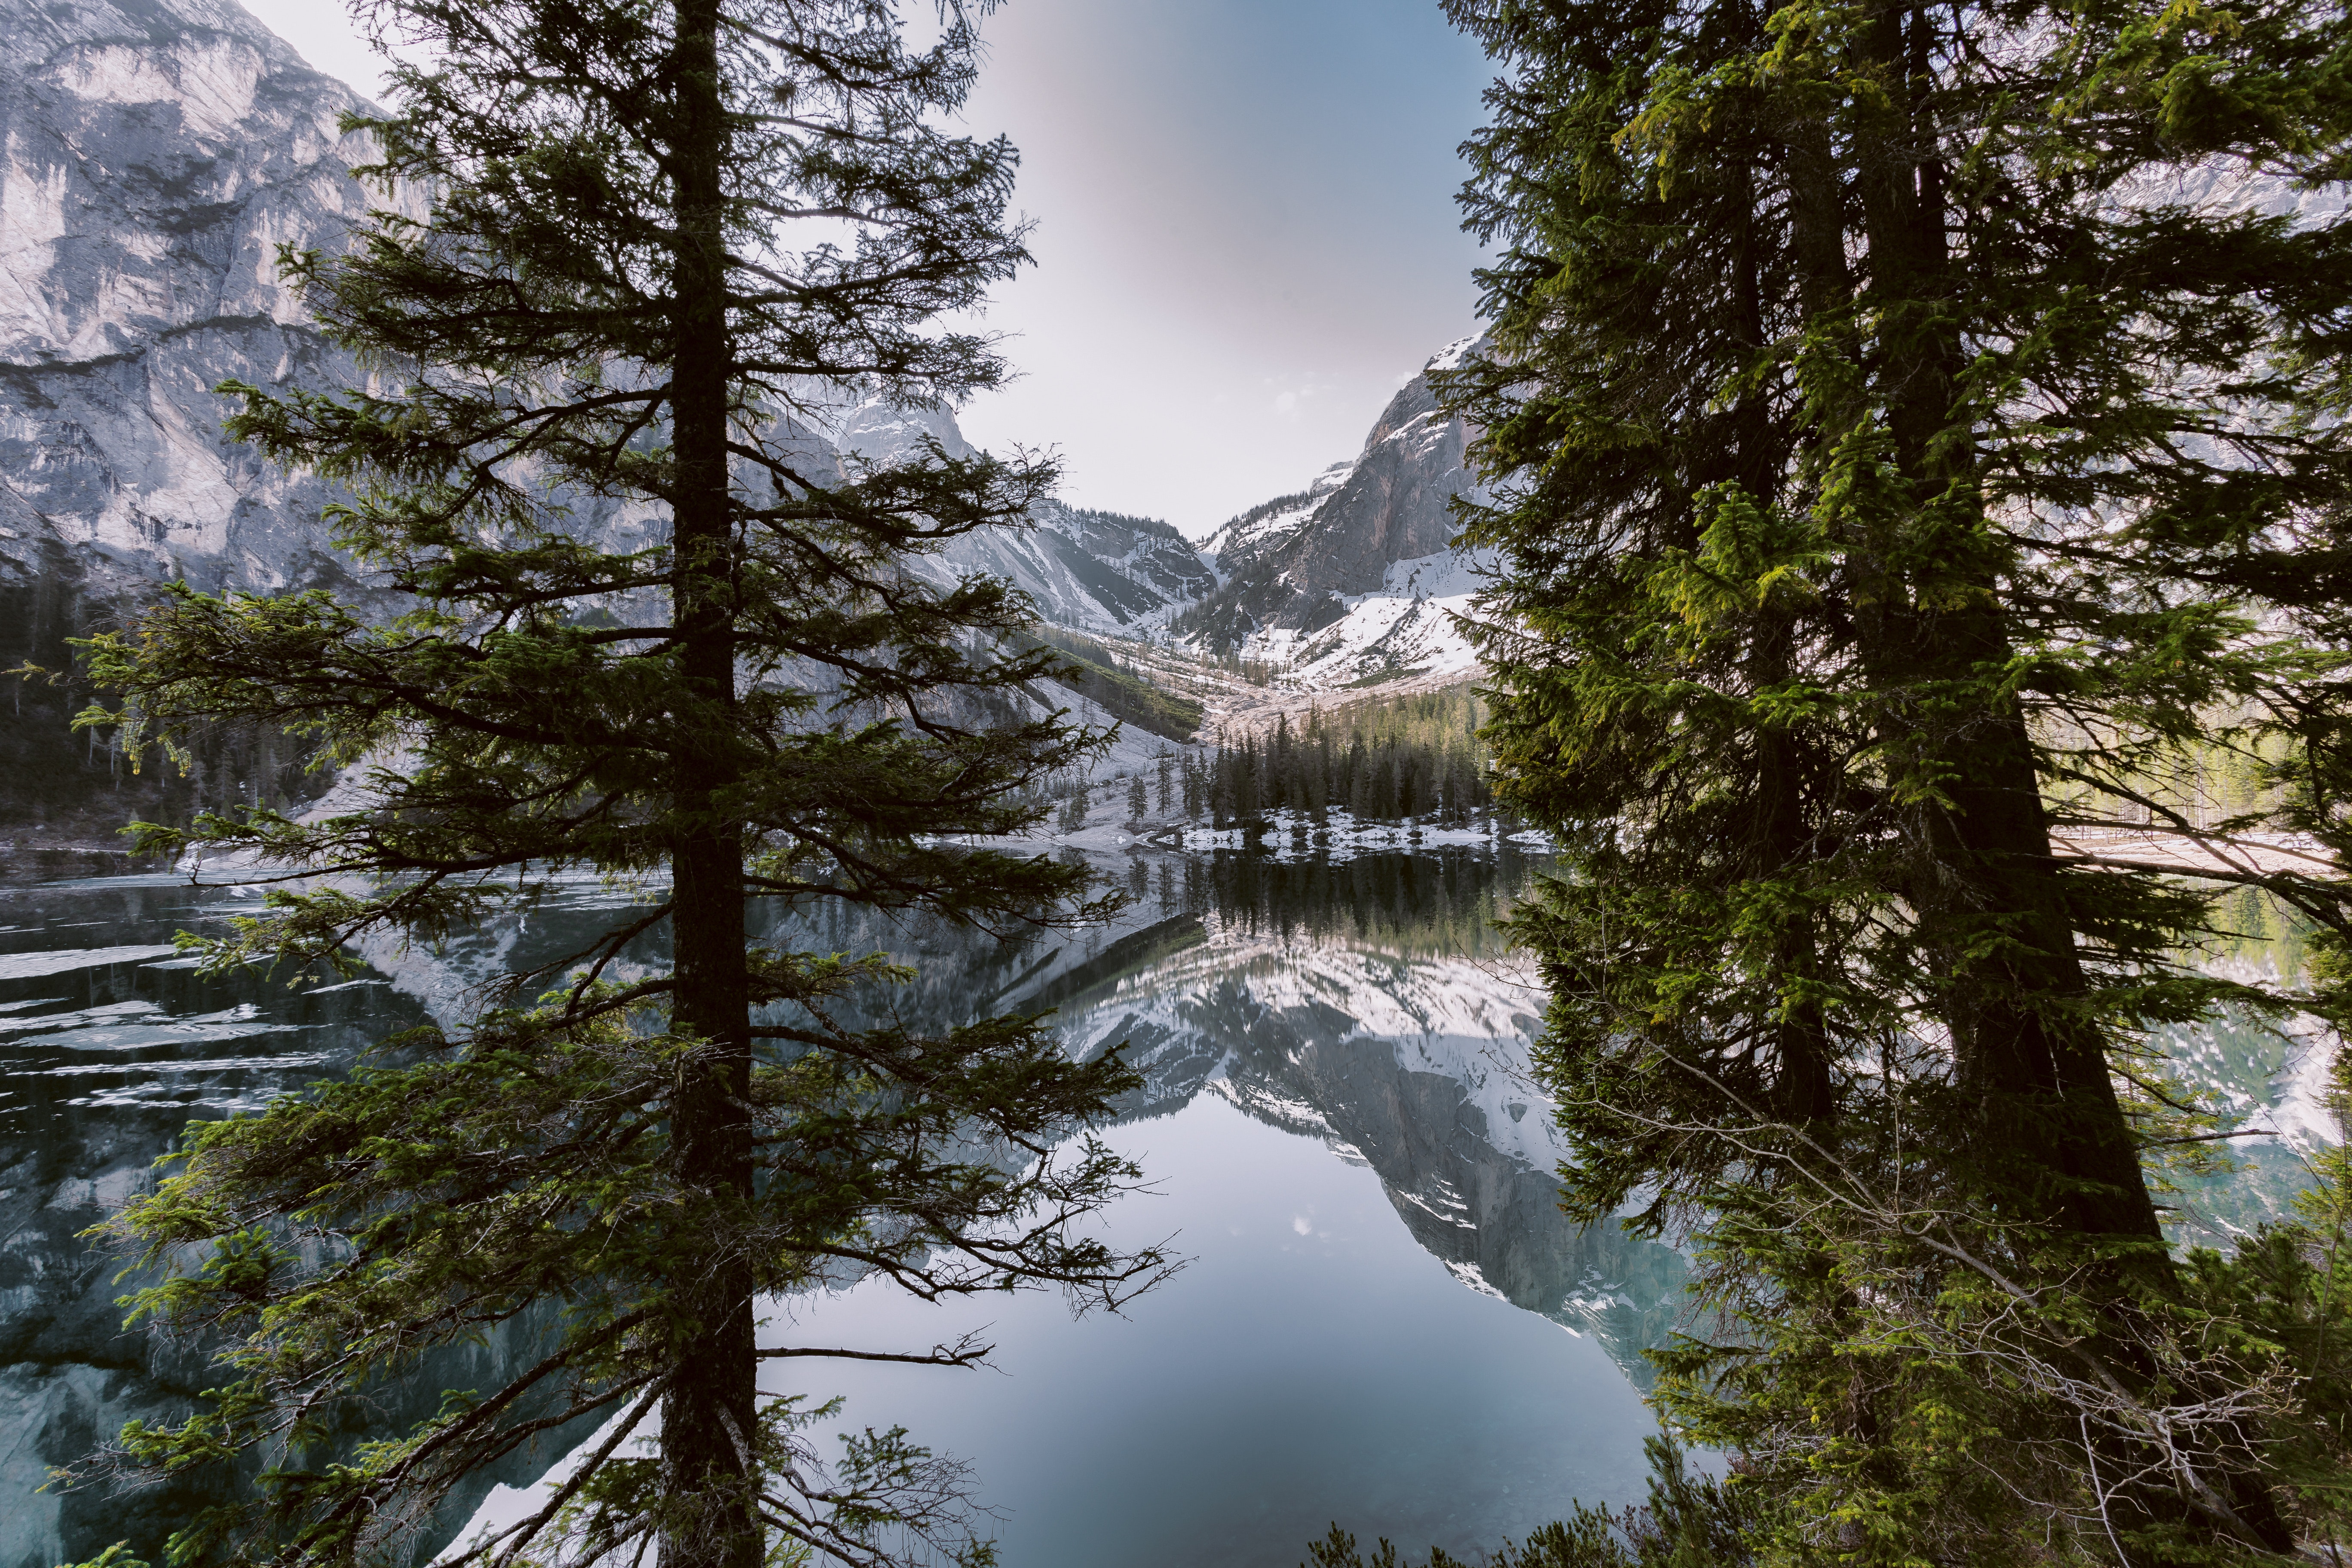 Pines near a body of water and mountain under white skies